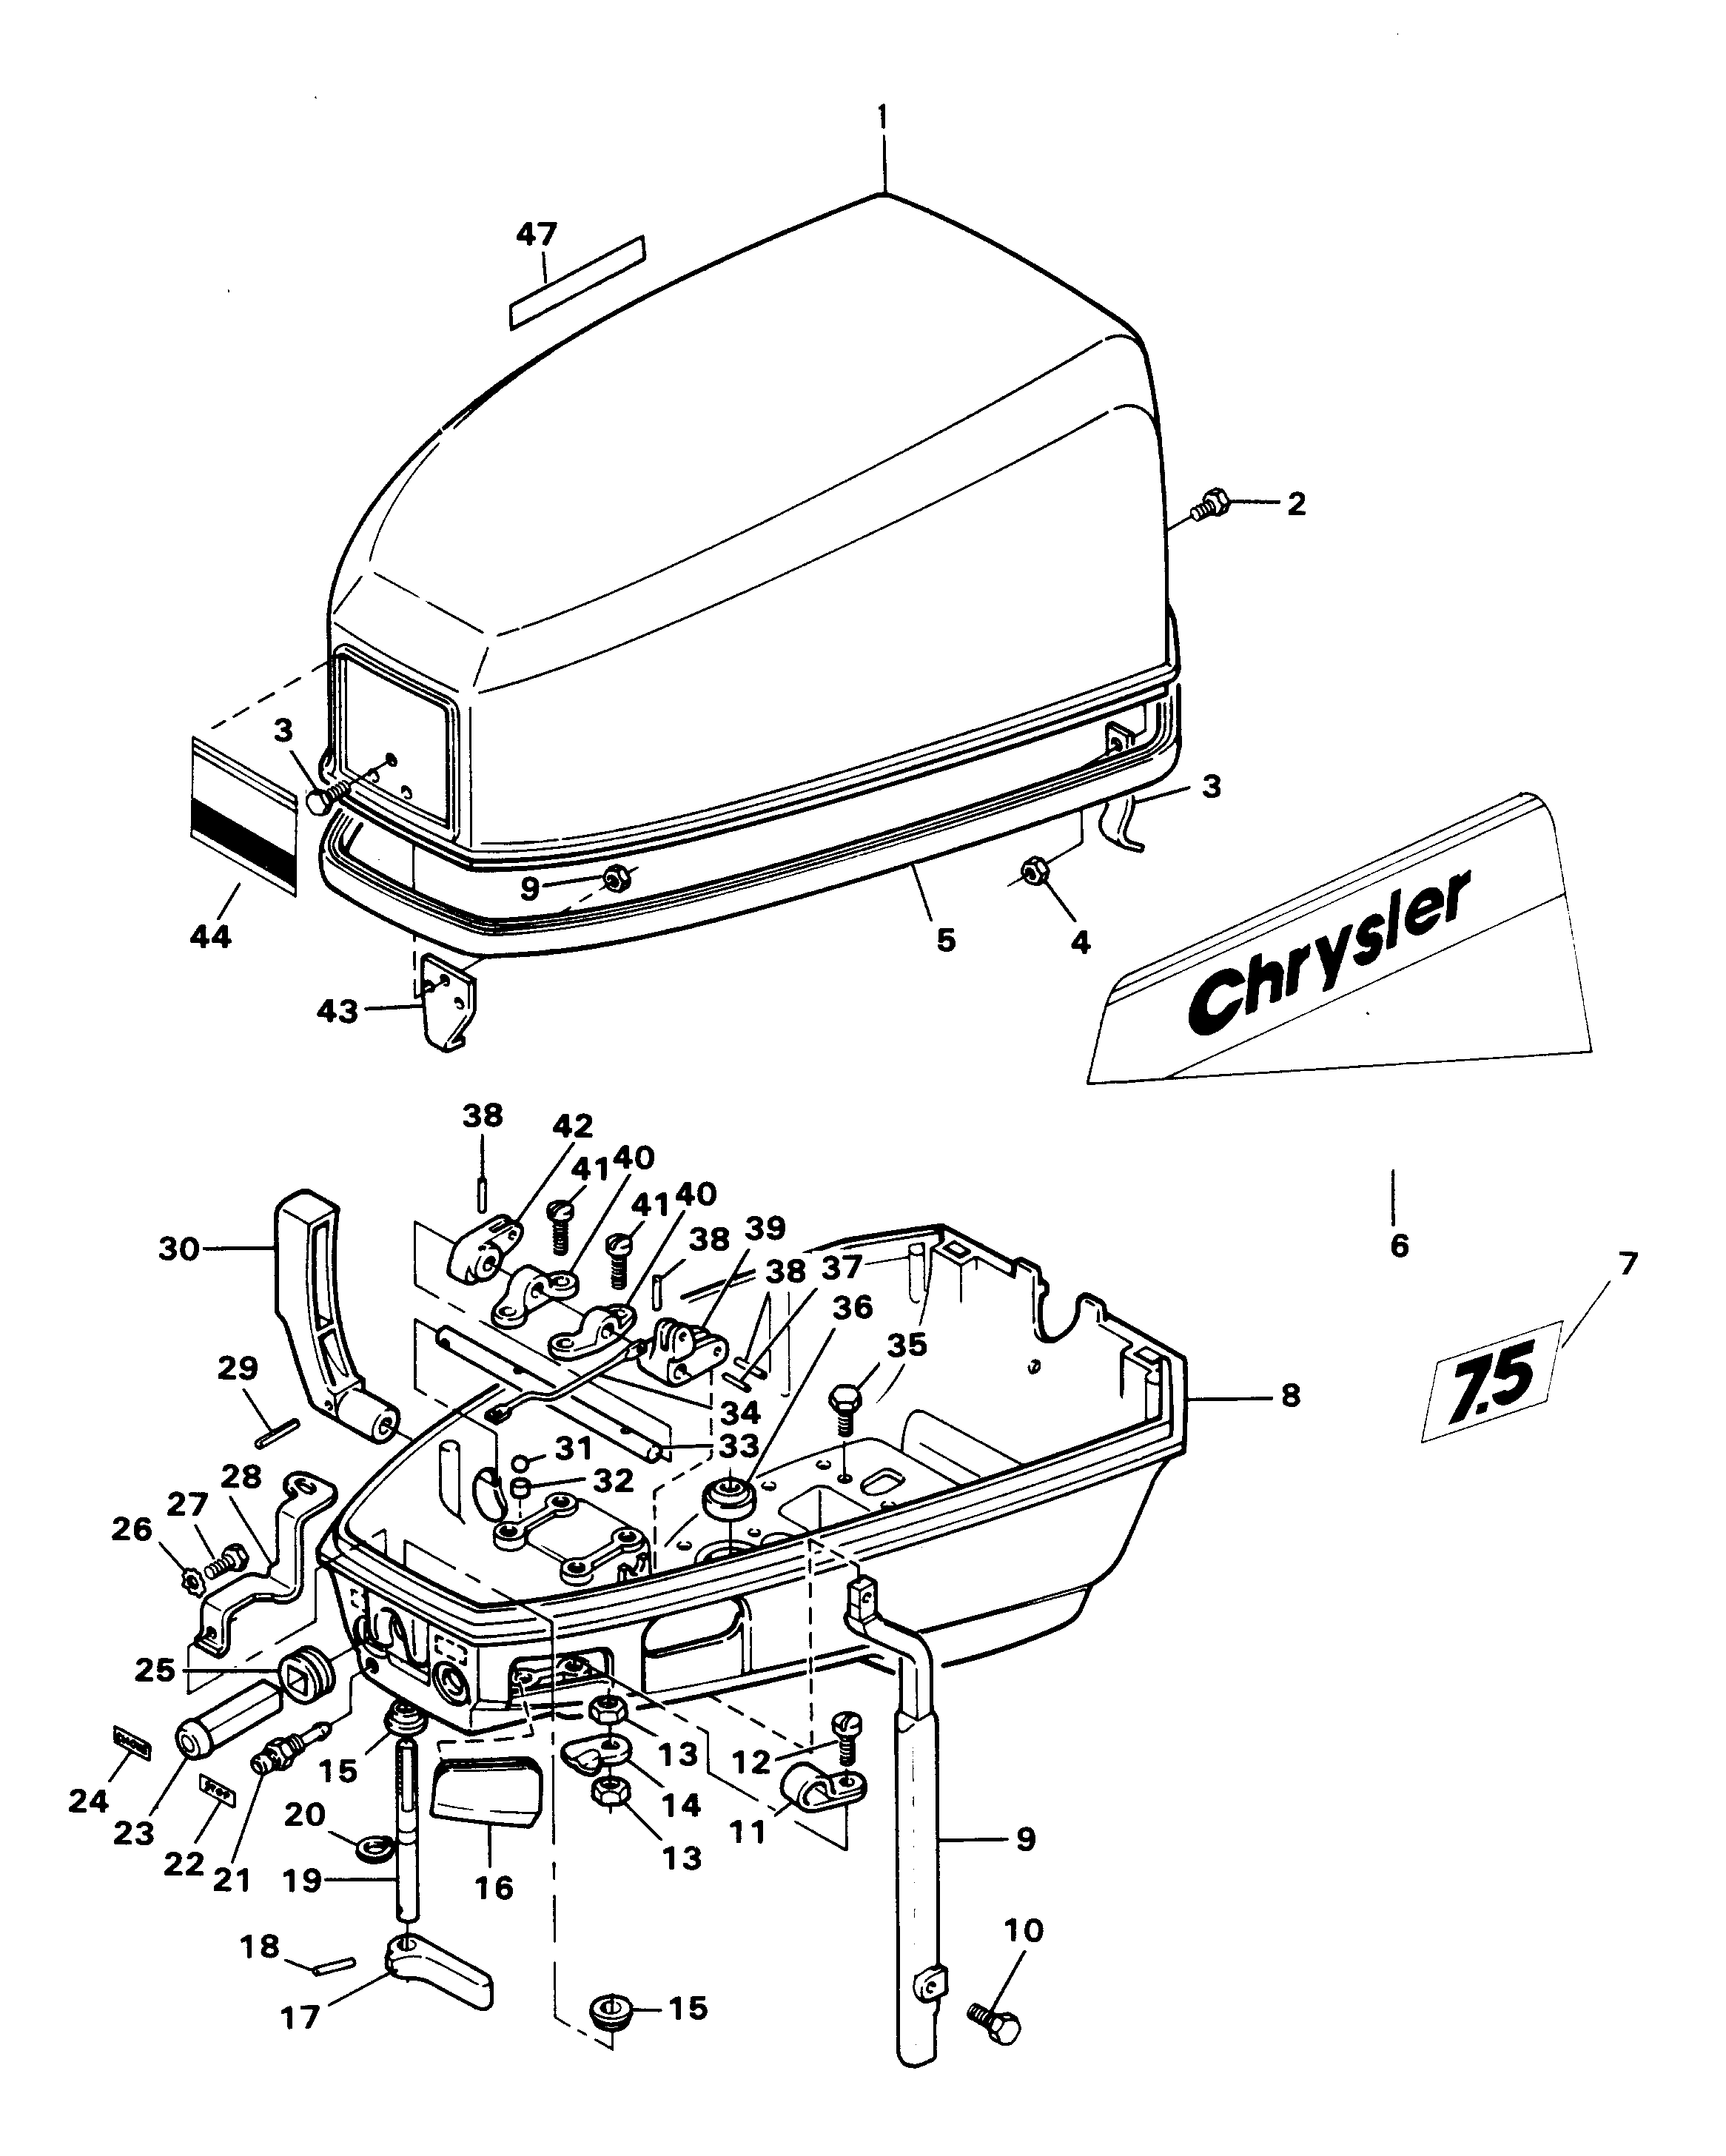 Mercury Chrysler 75 1981 72h1d Engine Cover And Support 2 7 Diagram Plate